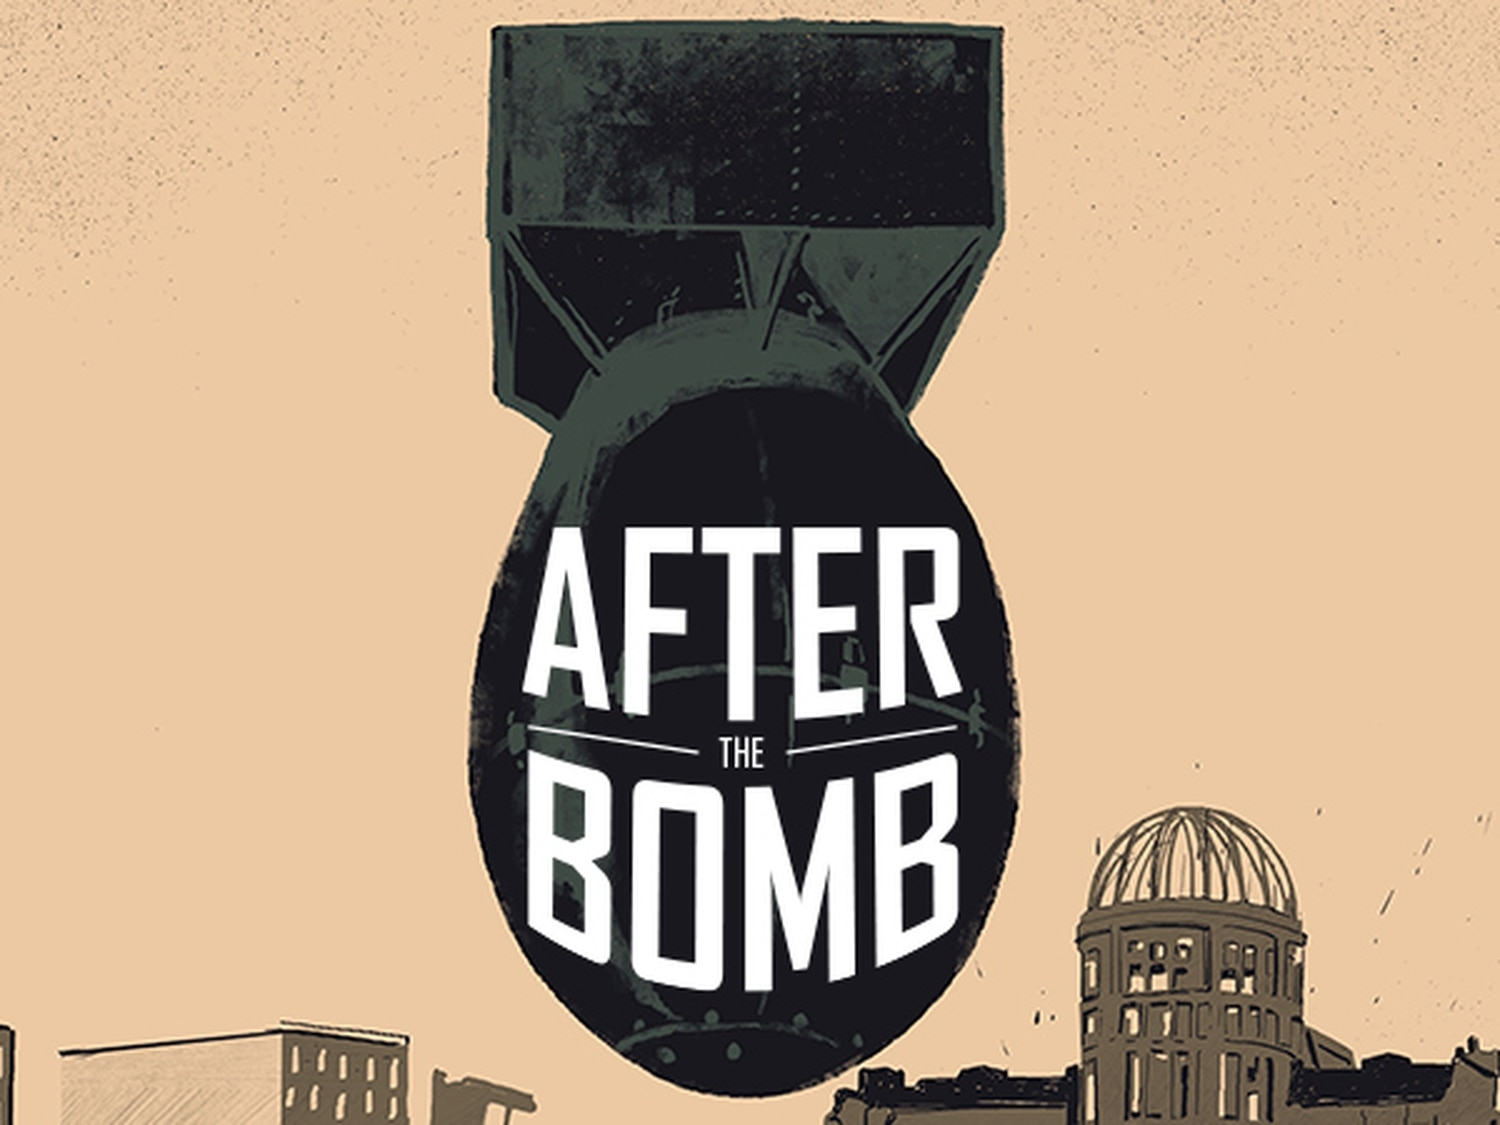 After the bomb cover stories santa fe reporter pat kinsella jeuxipadfo Image collections